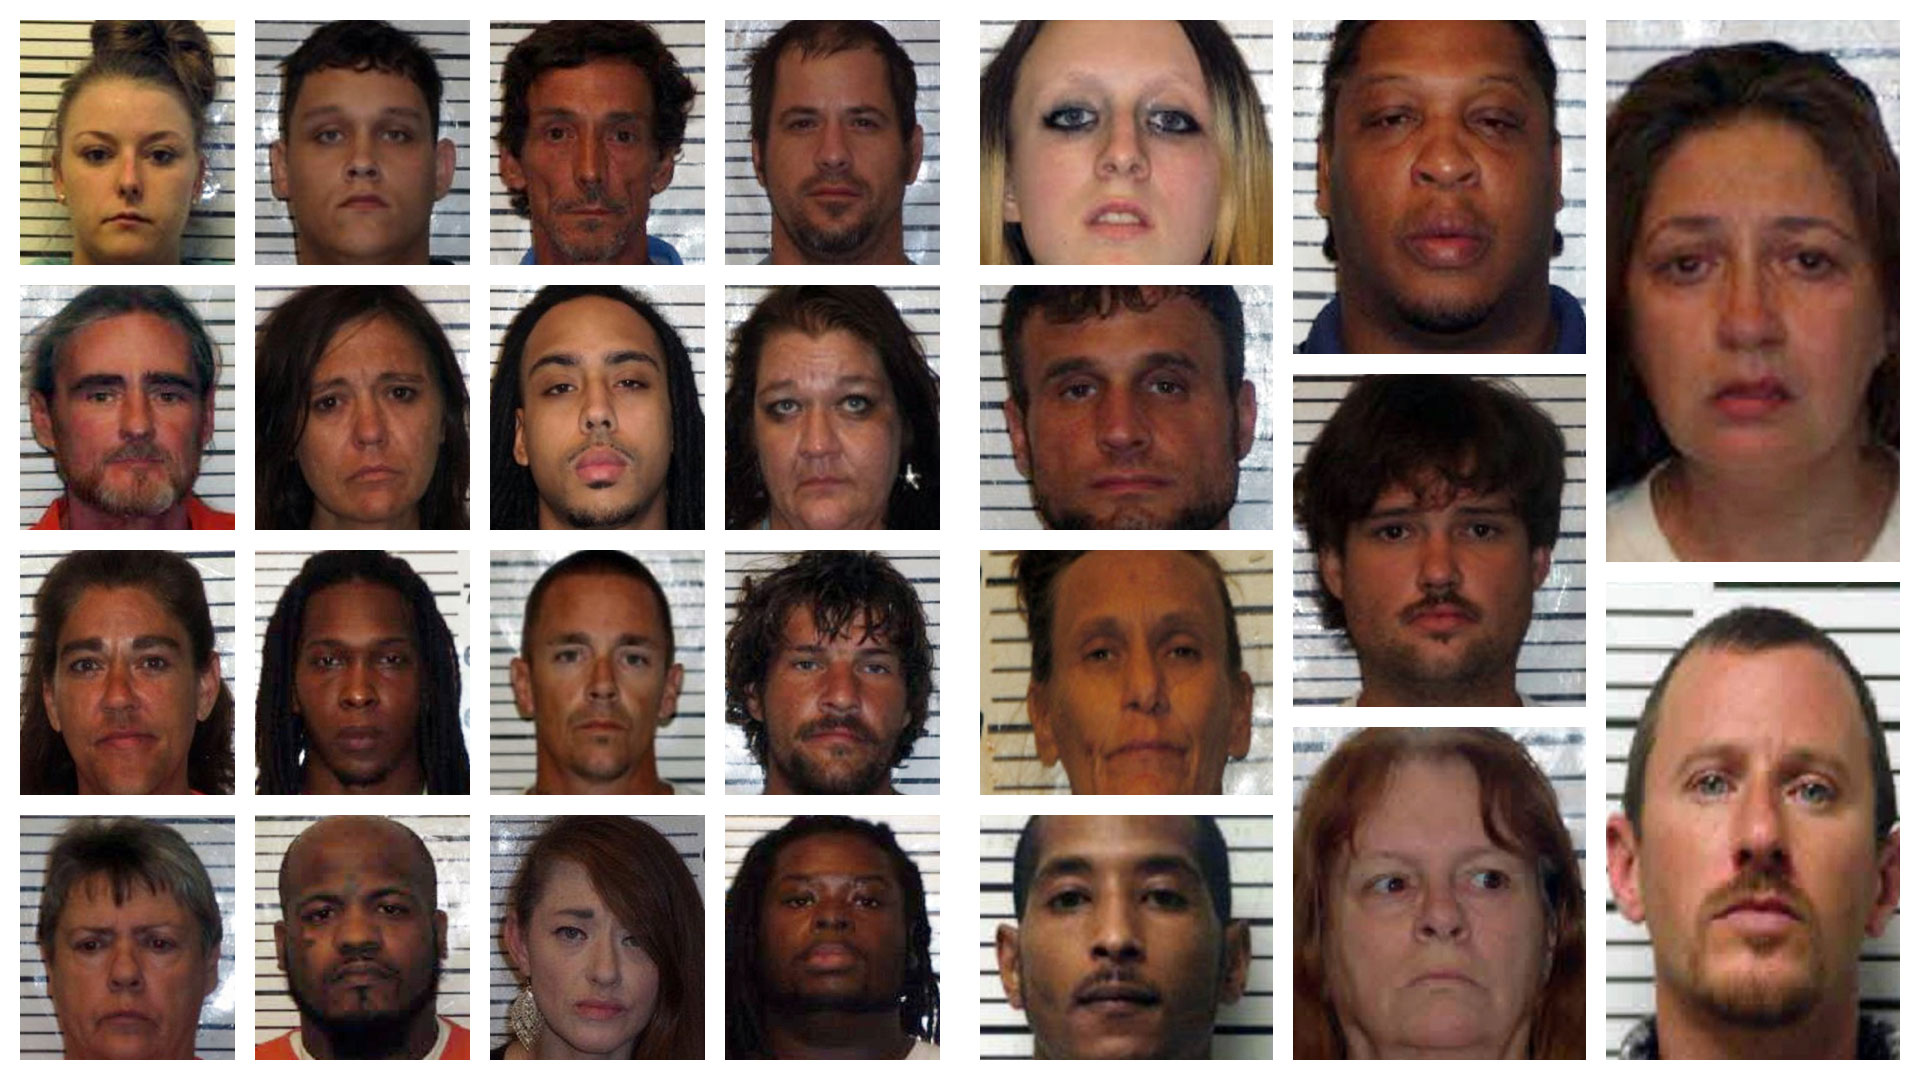 25 arrested as part of 'Operation East to West' in NC